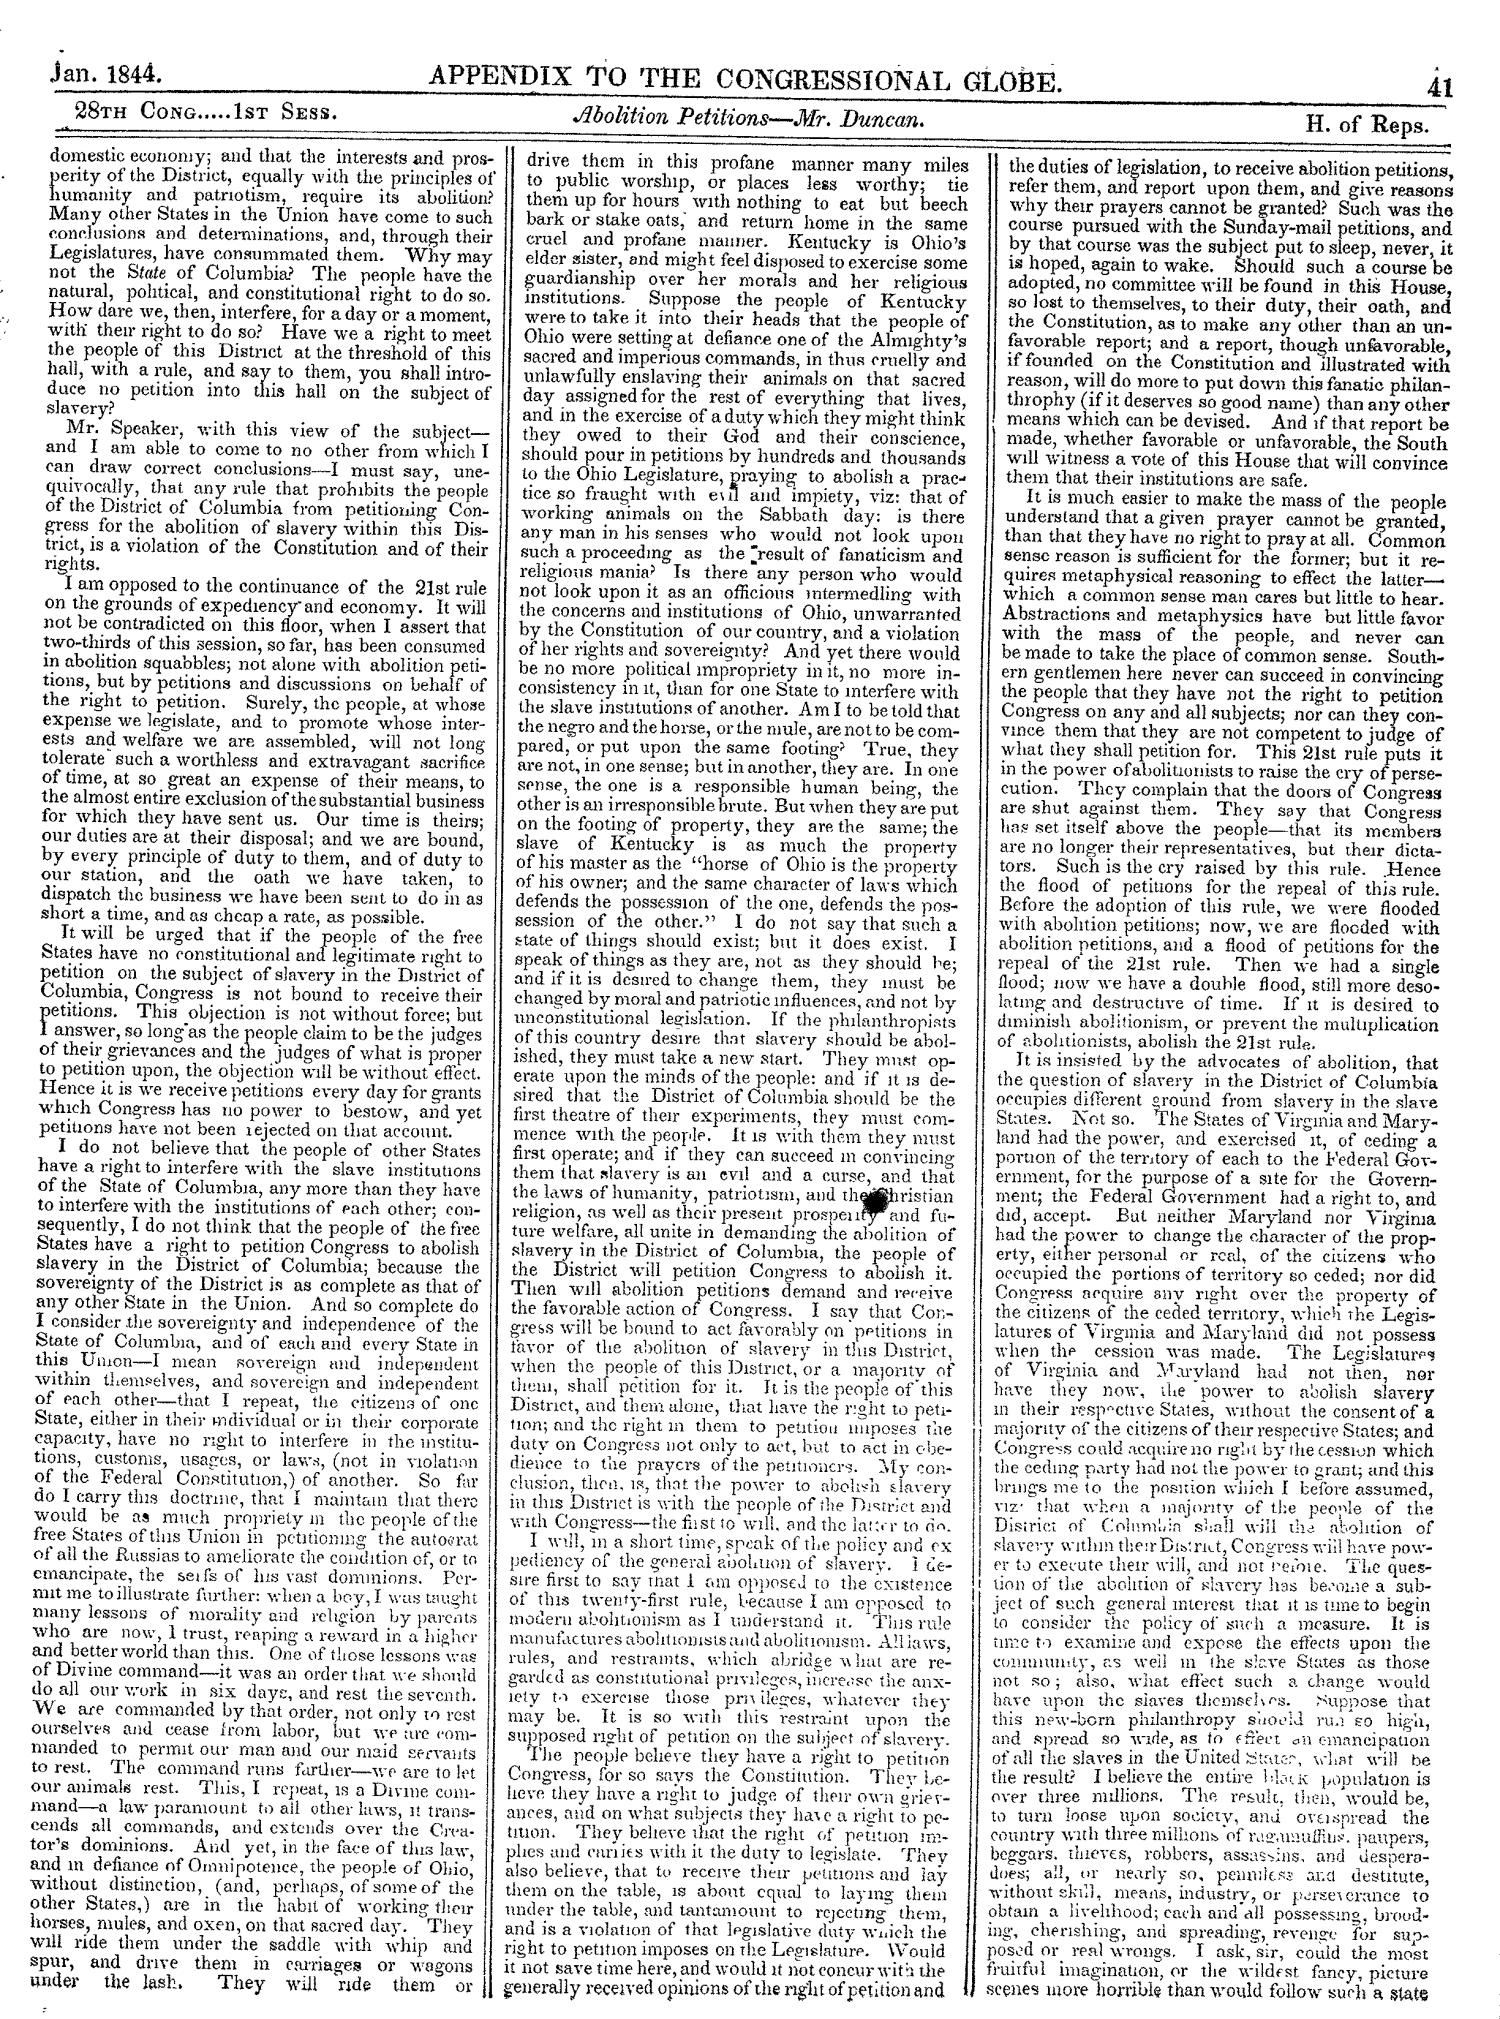 The Congressional Globe, Volume 13, Part 2: Twenty-Eighth Congress, First Session                                                                                                      41